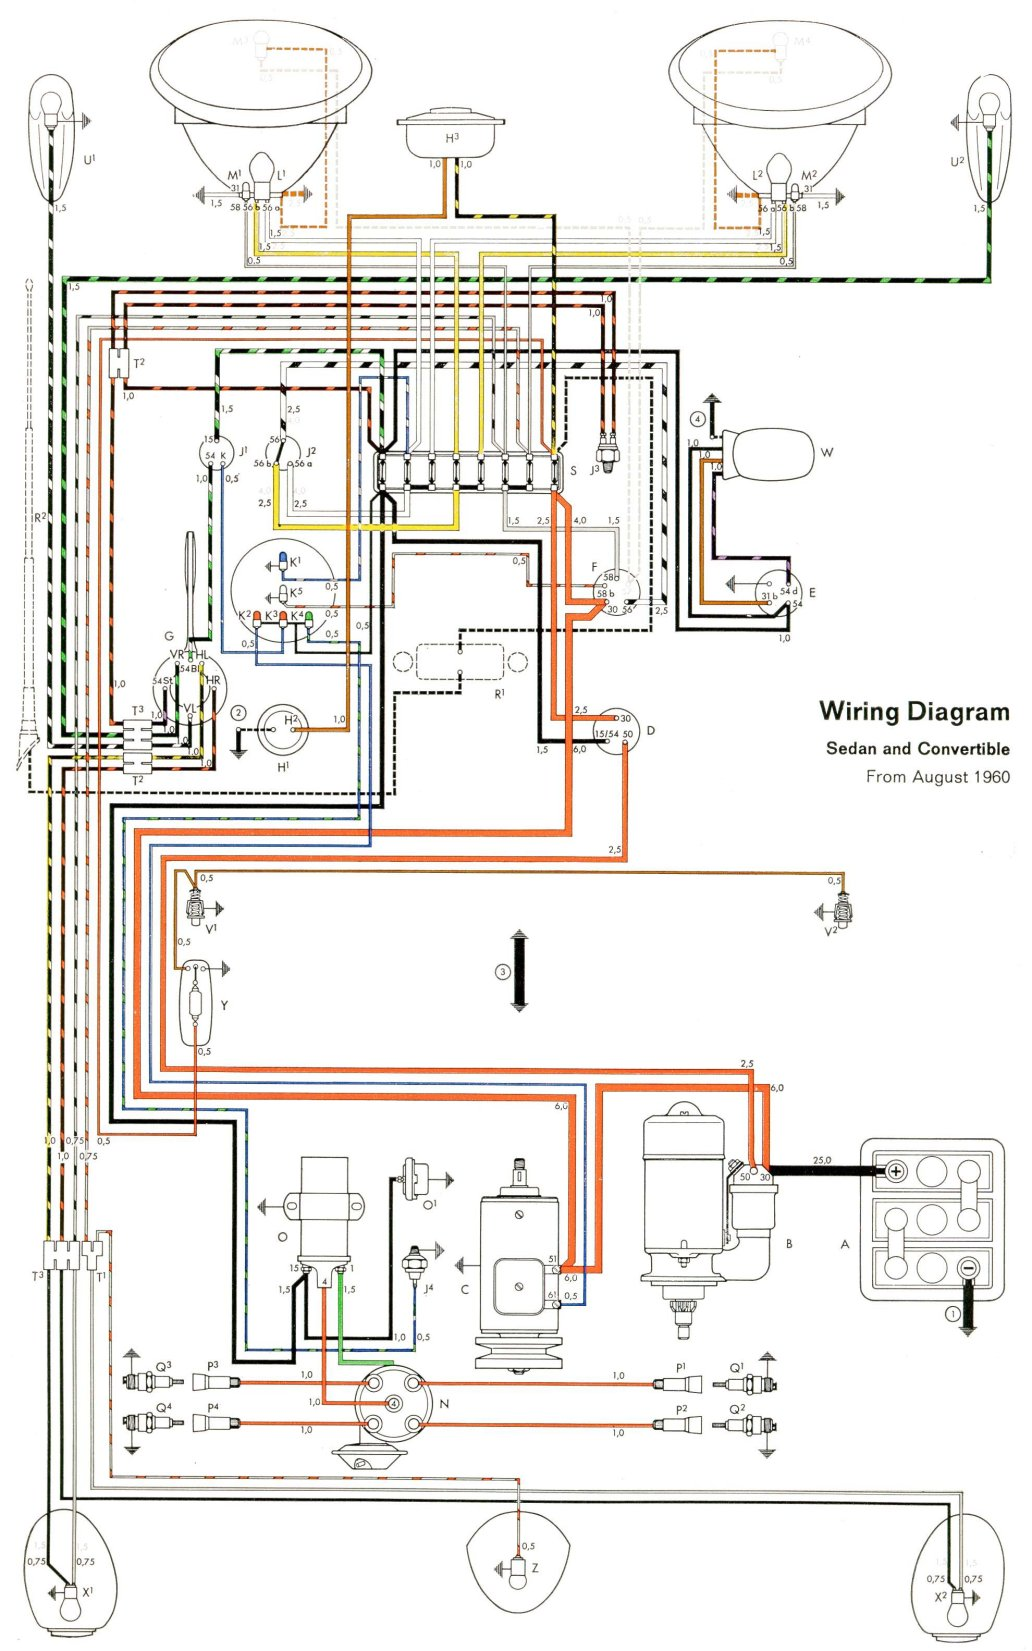 bug_61 european wiring diagram hyundai sonata wiring diagram \u2022 free vw wiring diagram symbols at eliteediting.co